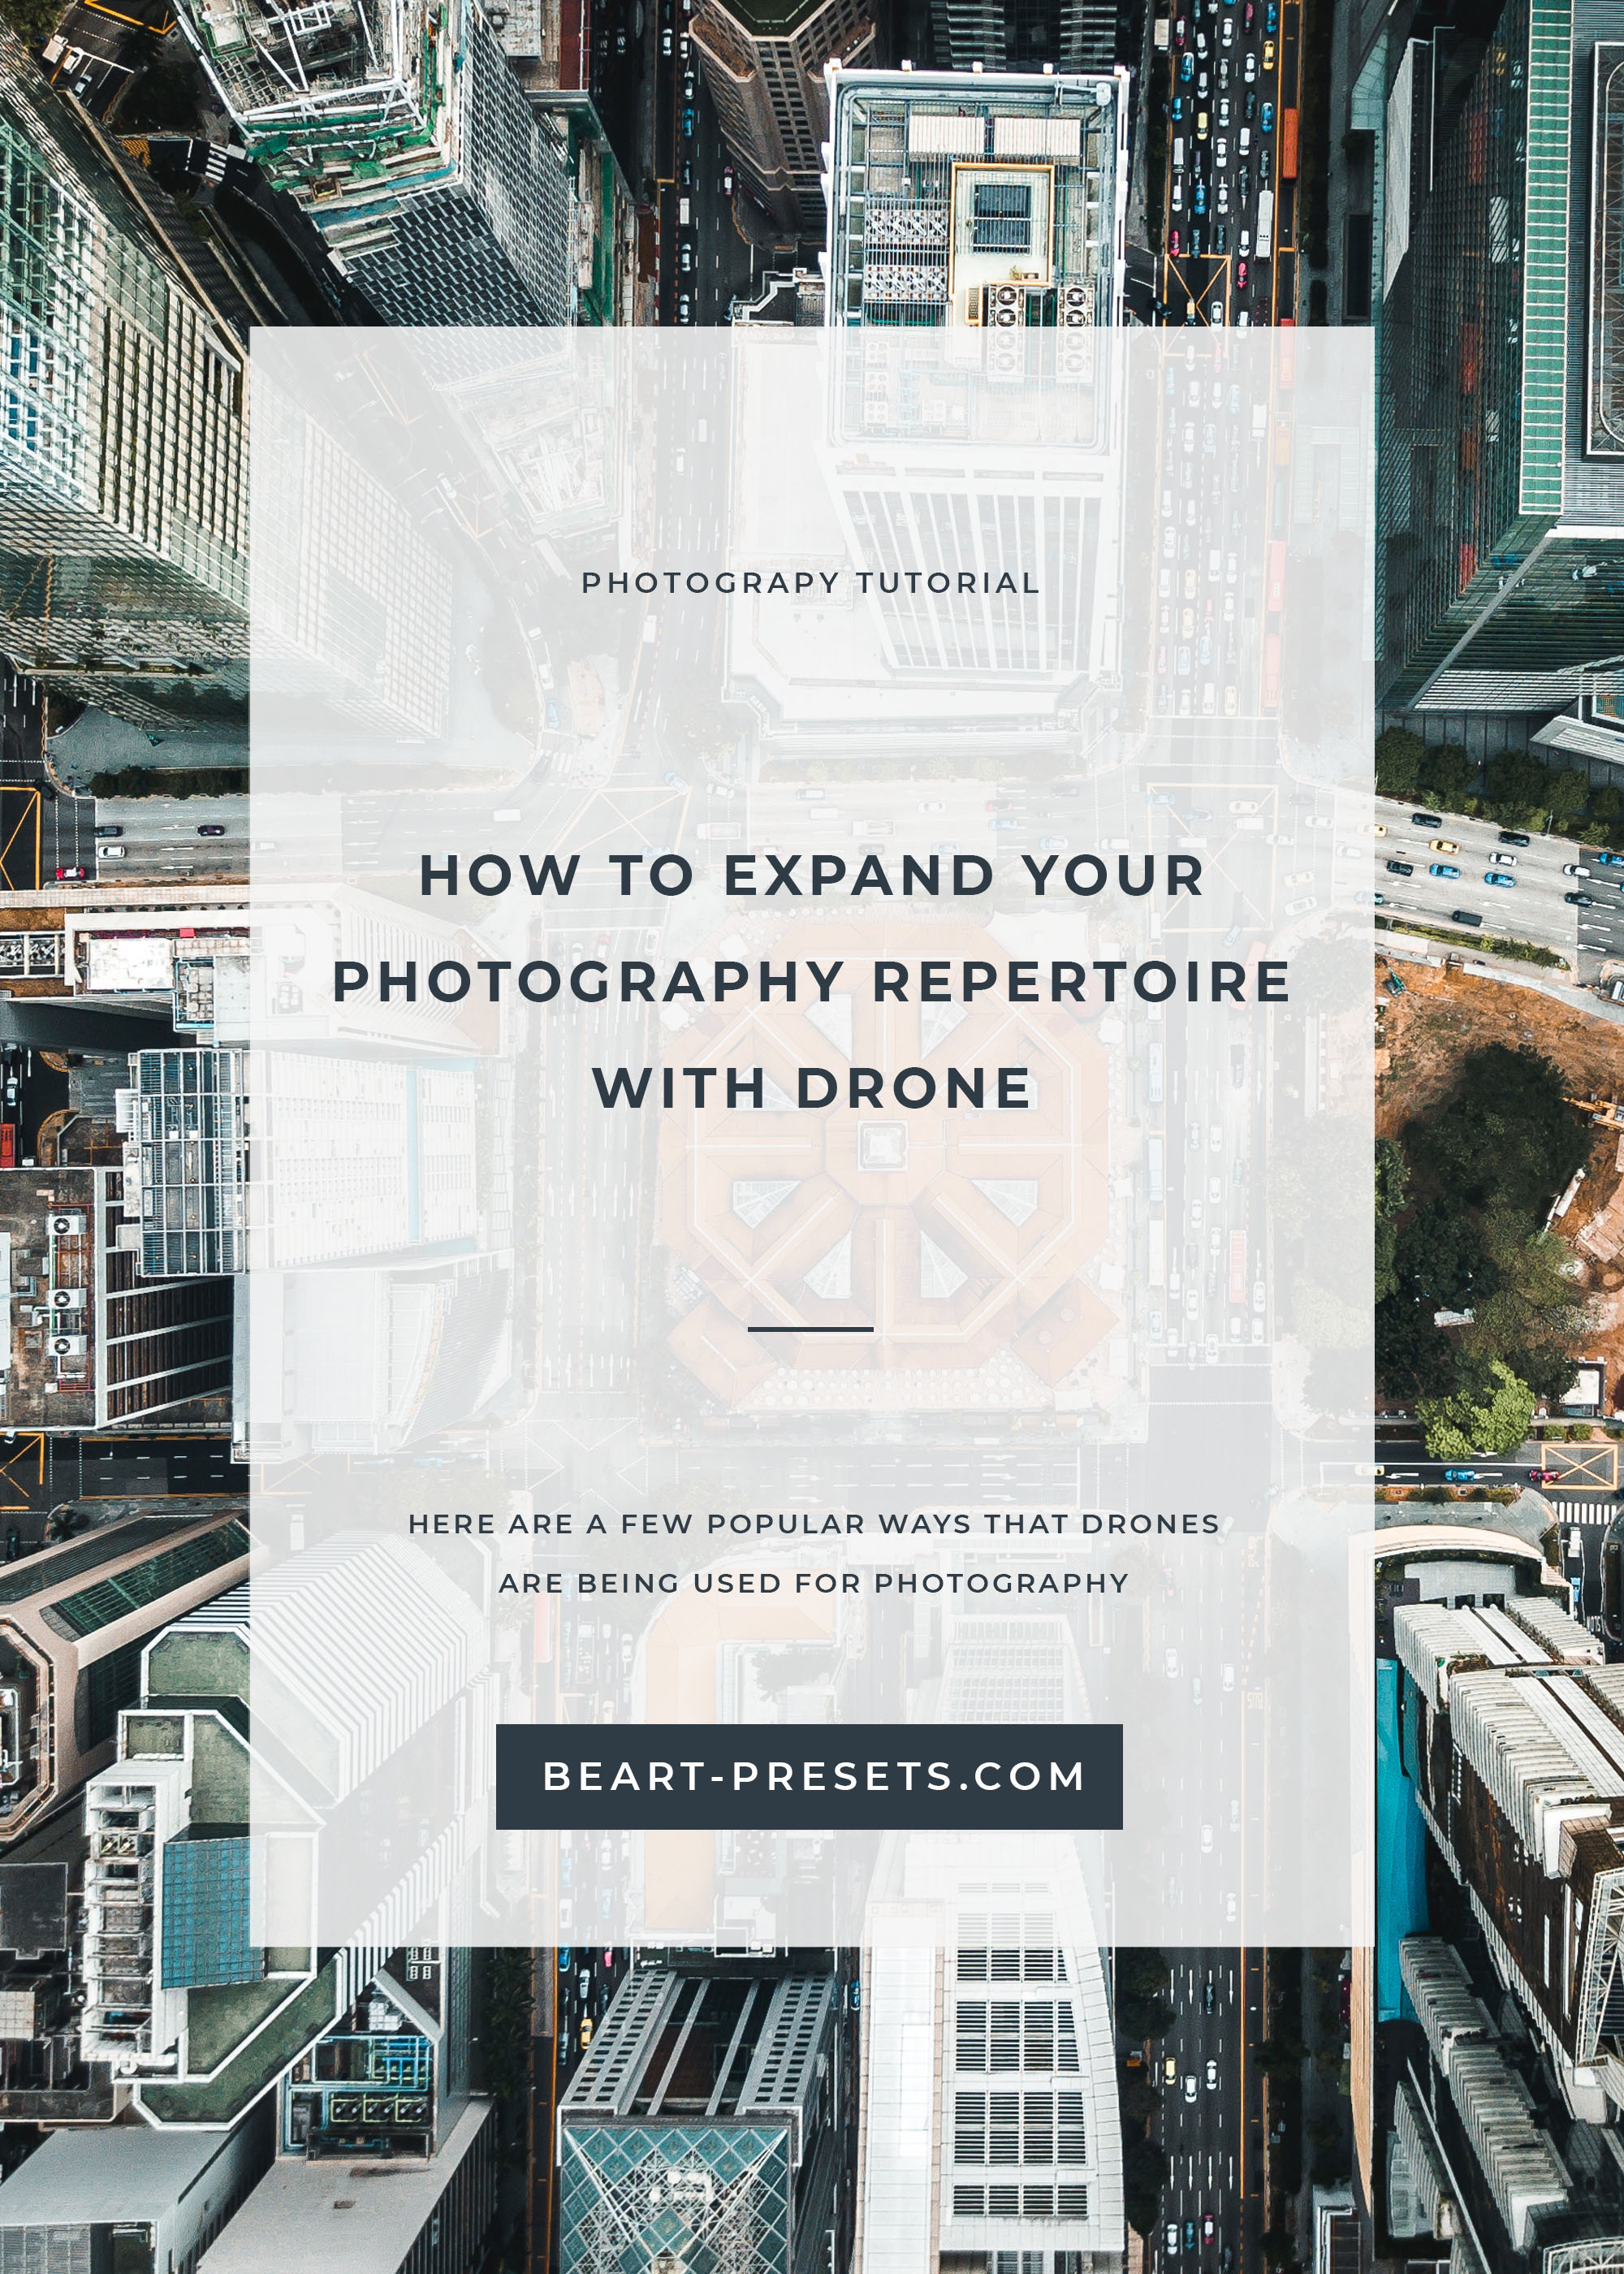 HOW TO EXPAND YOUR PHOTOGRAPHY REPERTOIRE WITH DRONE